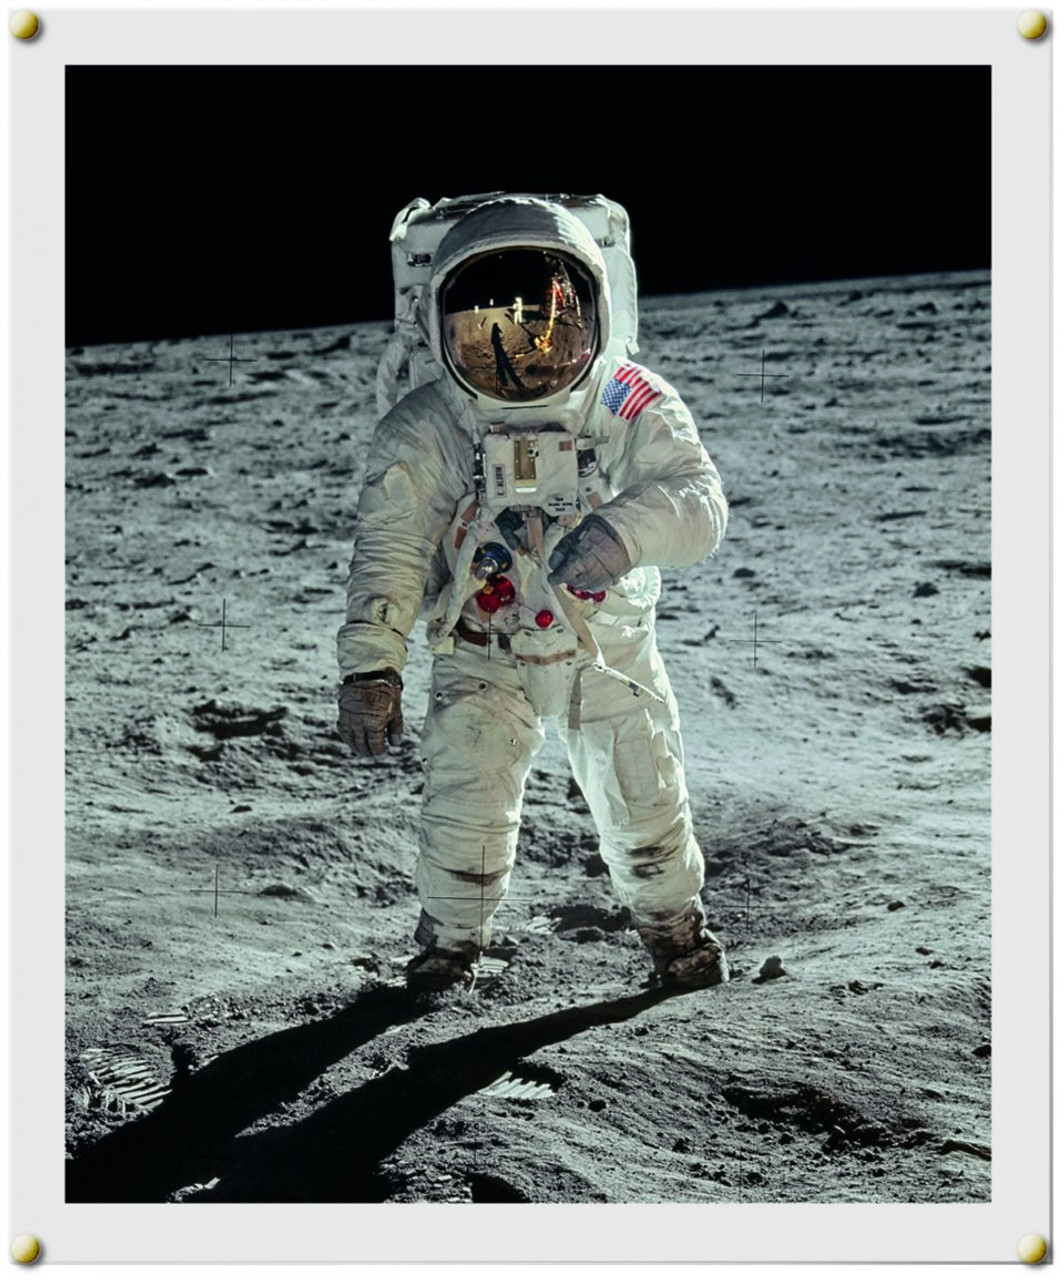 Moonfire by Norman Mailer, Includes Signed and Framed Print by Buzz Aldrin